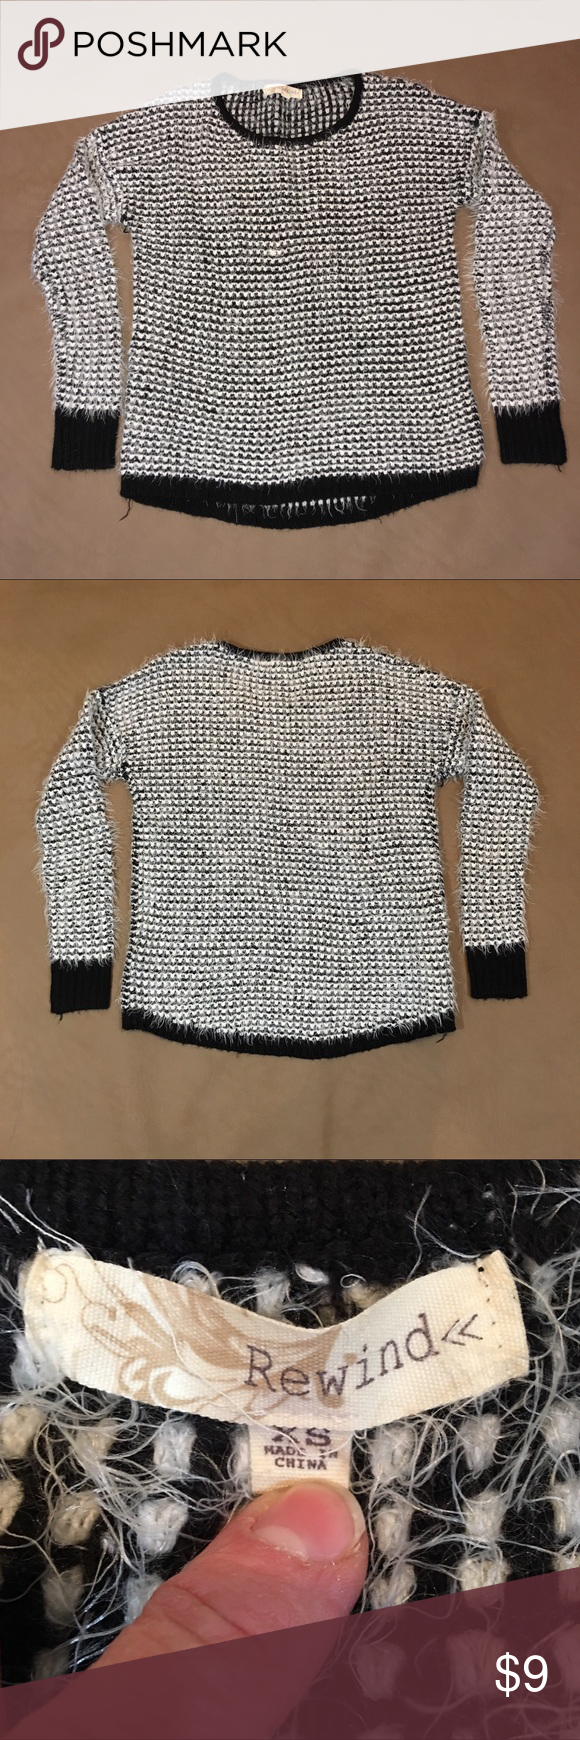 Women S Rewind Sweater Rewind Sweater Size Women S Xs Color Black And White Soft Warm And Fuzzy Item Pre Owned And In Very G Women Sweaters Clothes Design [ 1740 x 580 Pixel ]